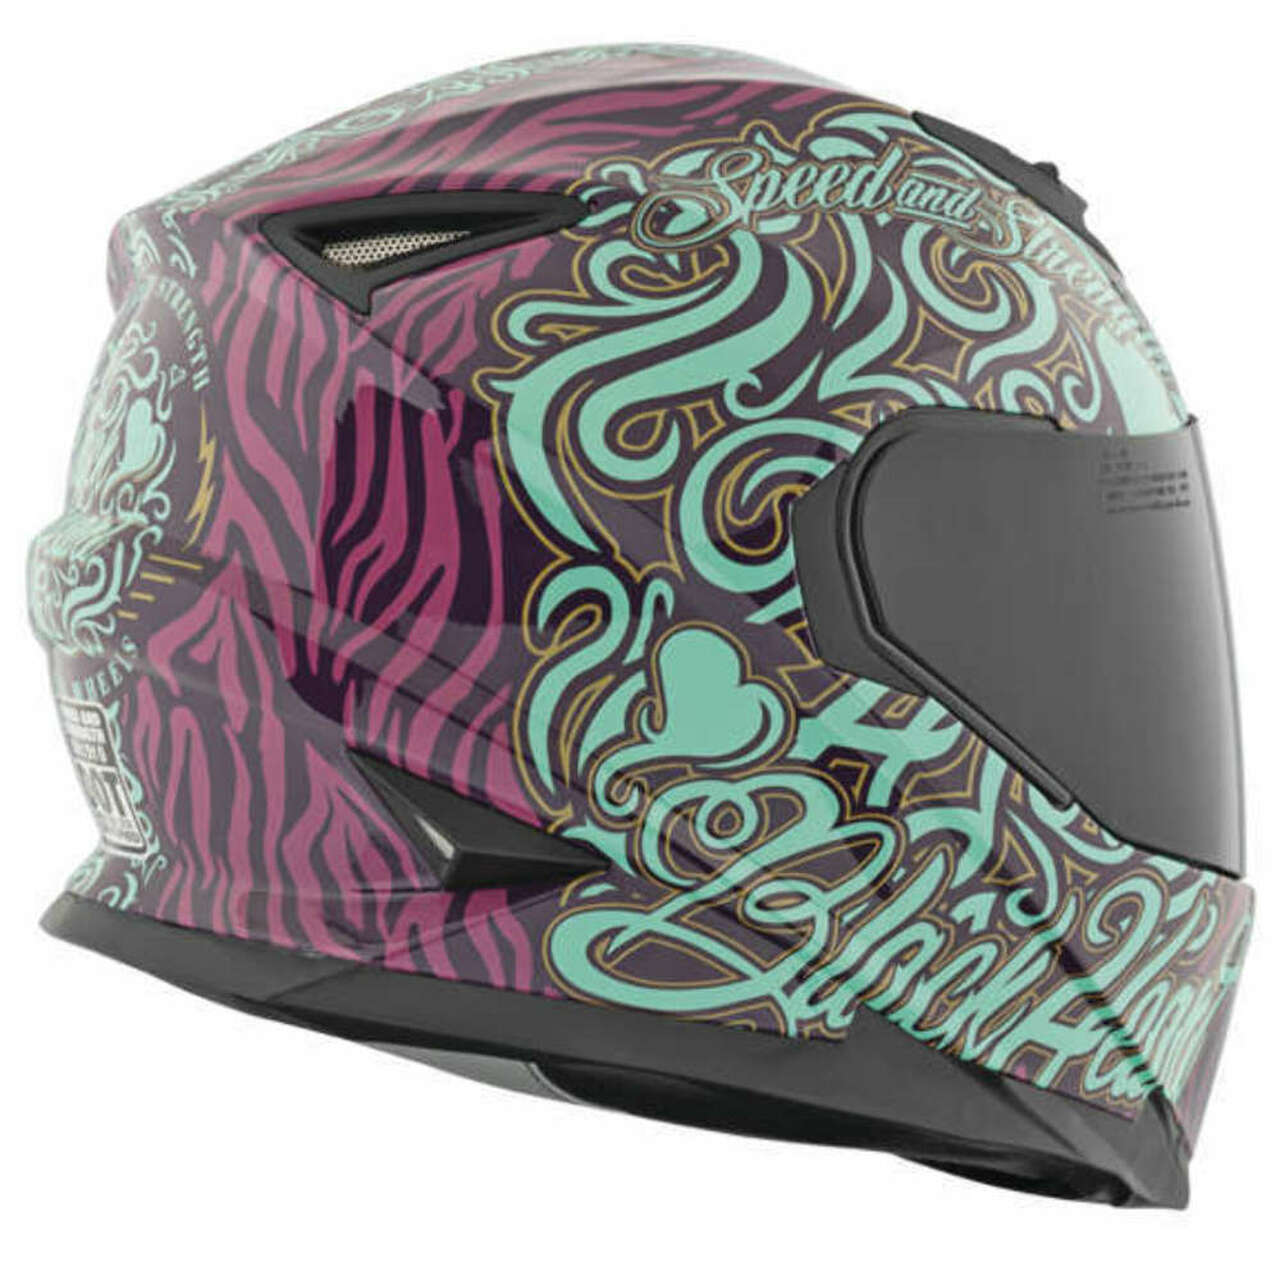 SPEED AND STRENGTH BLACK HEART SS1310 GLOSS PURPLE/TEAL